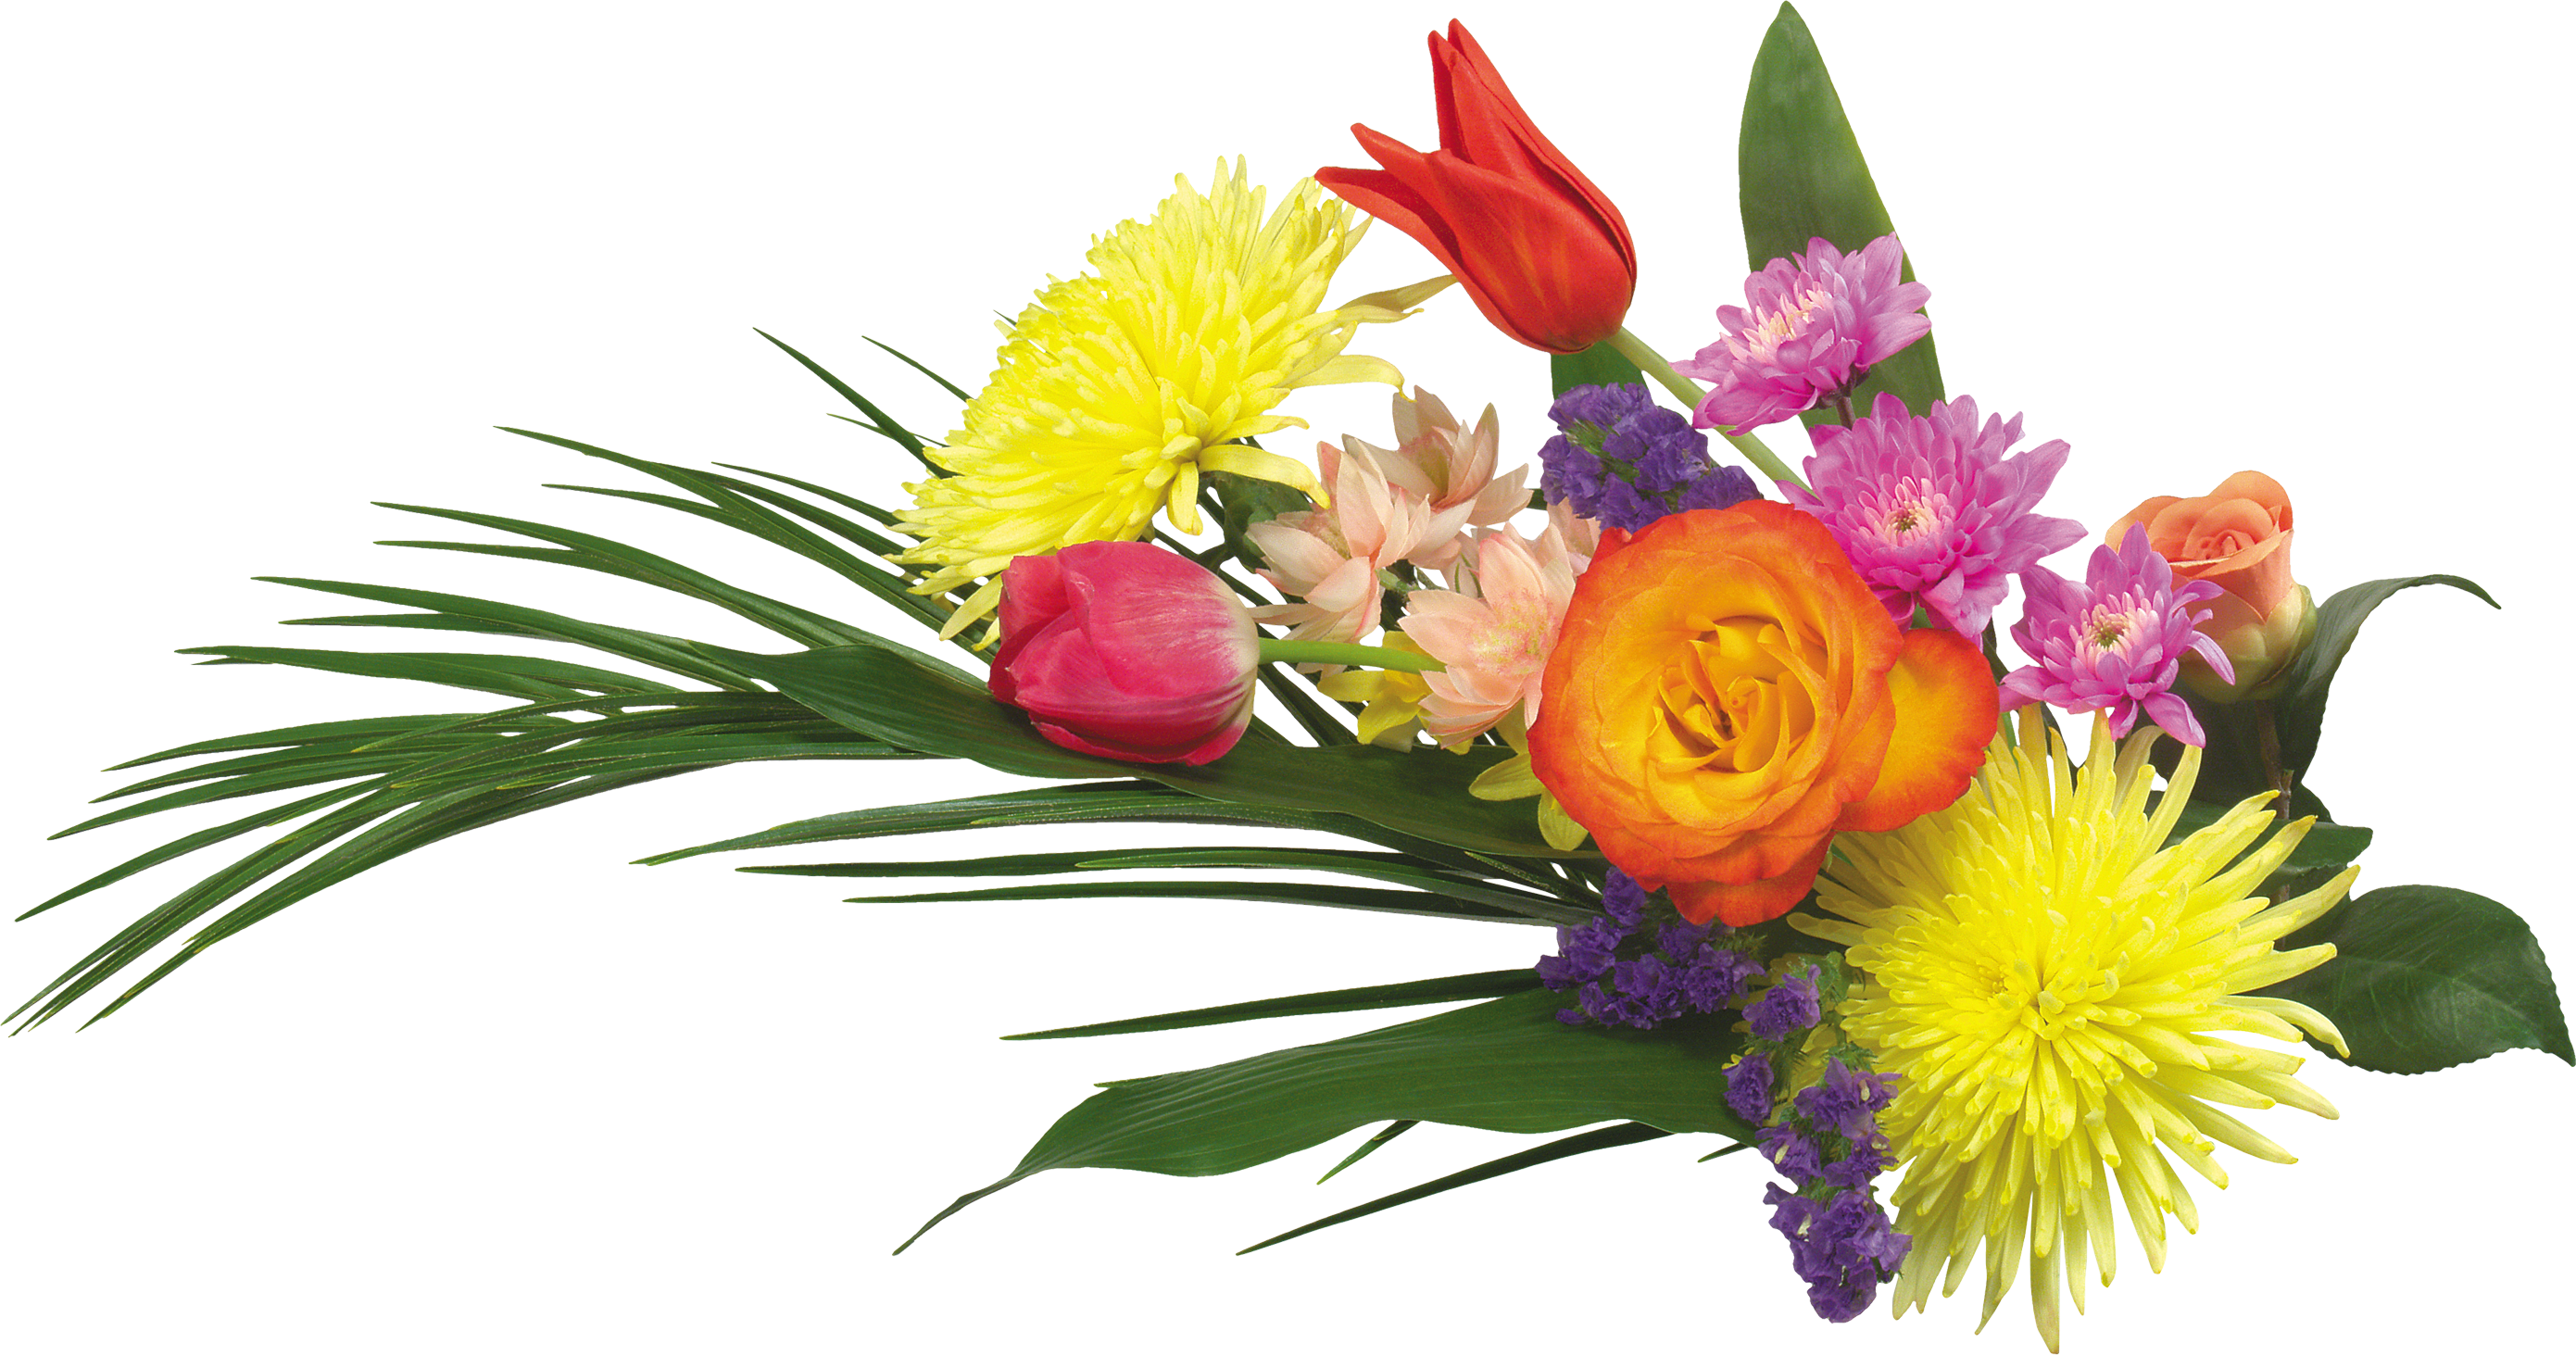 Bouquet of flowers images. Png flower